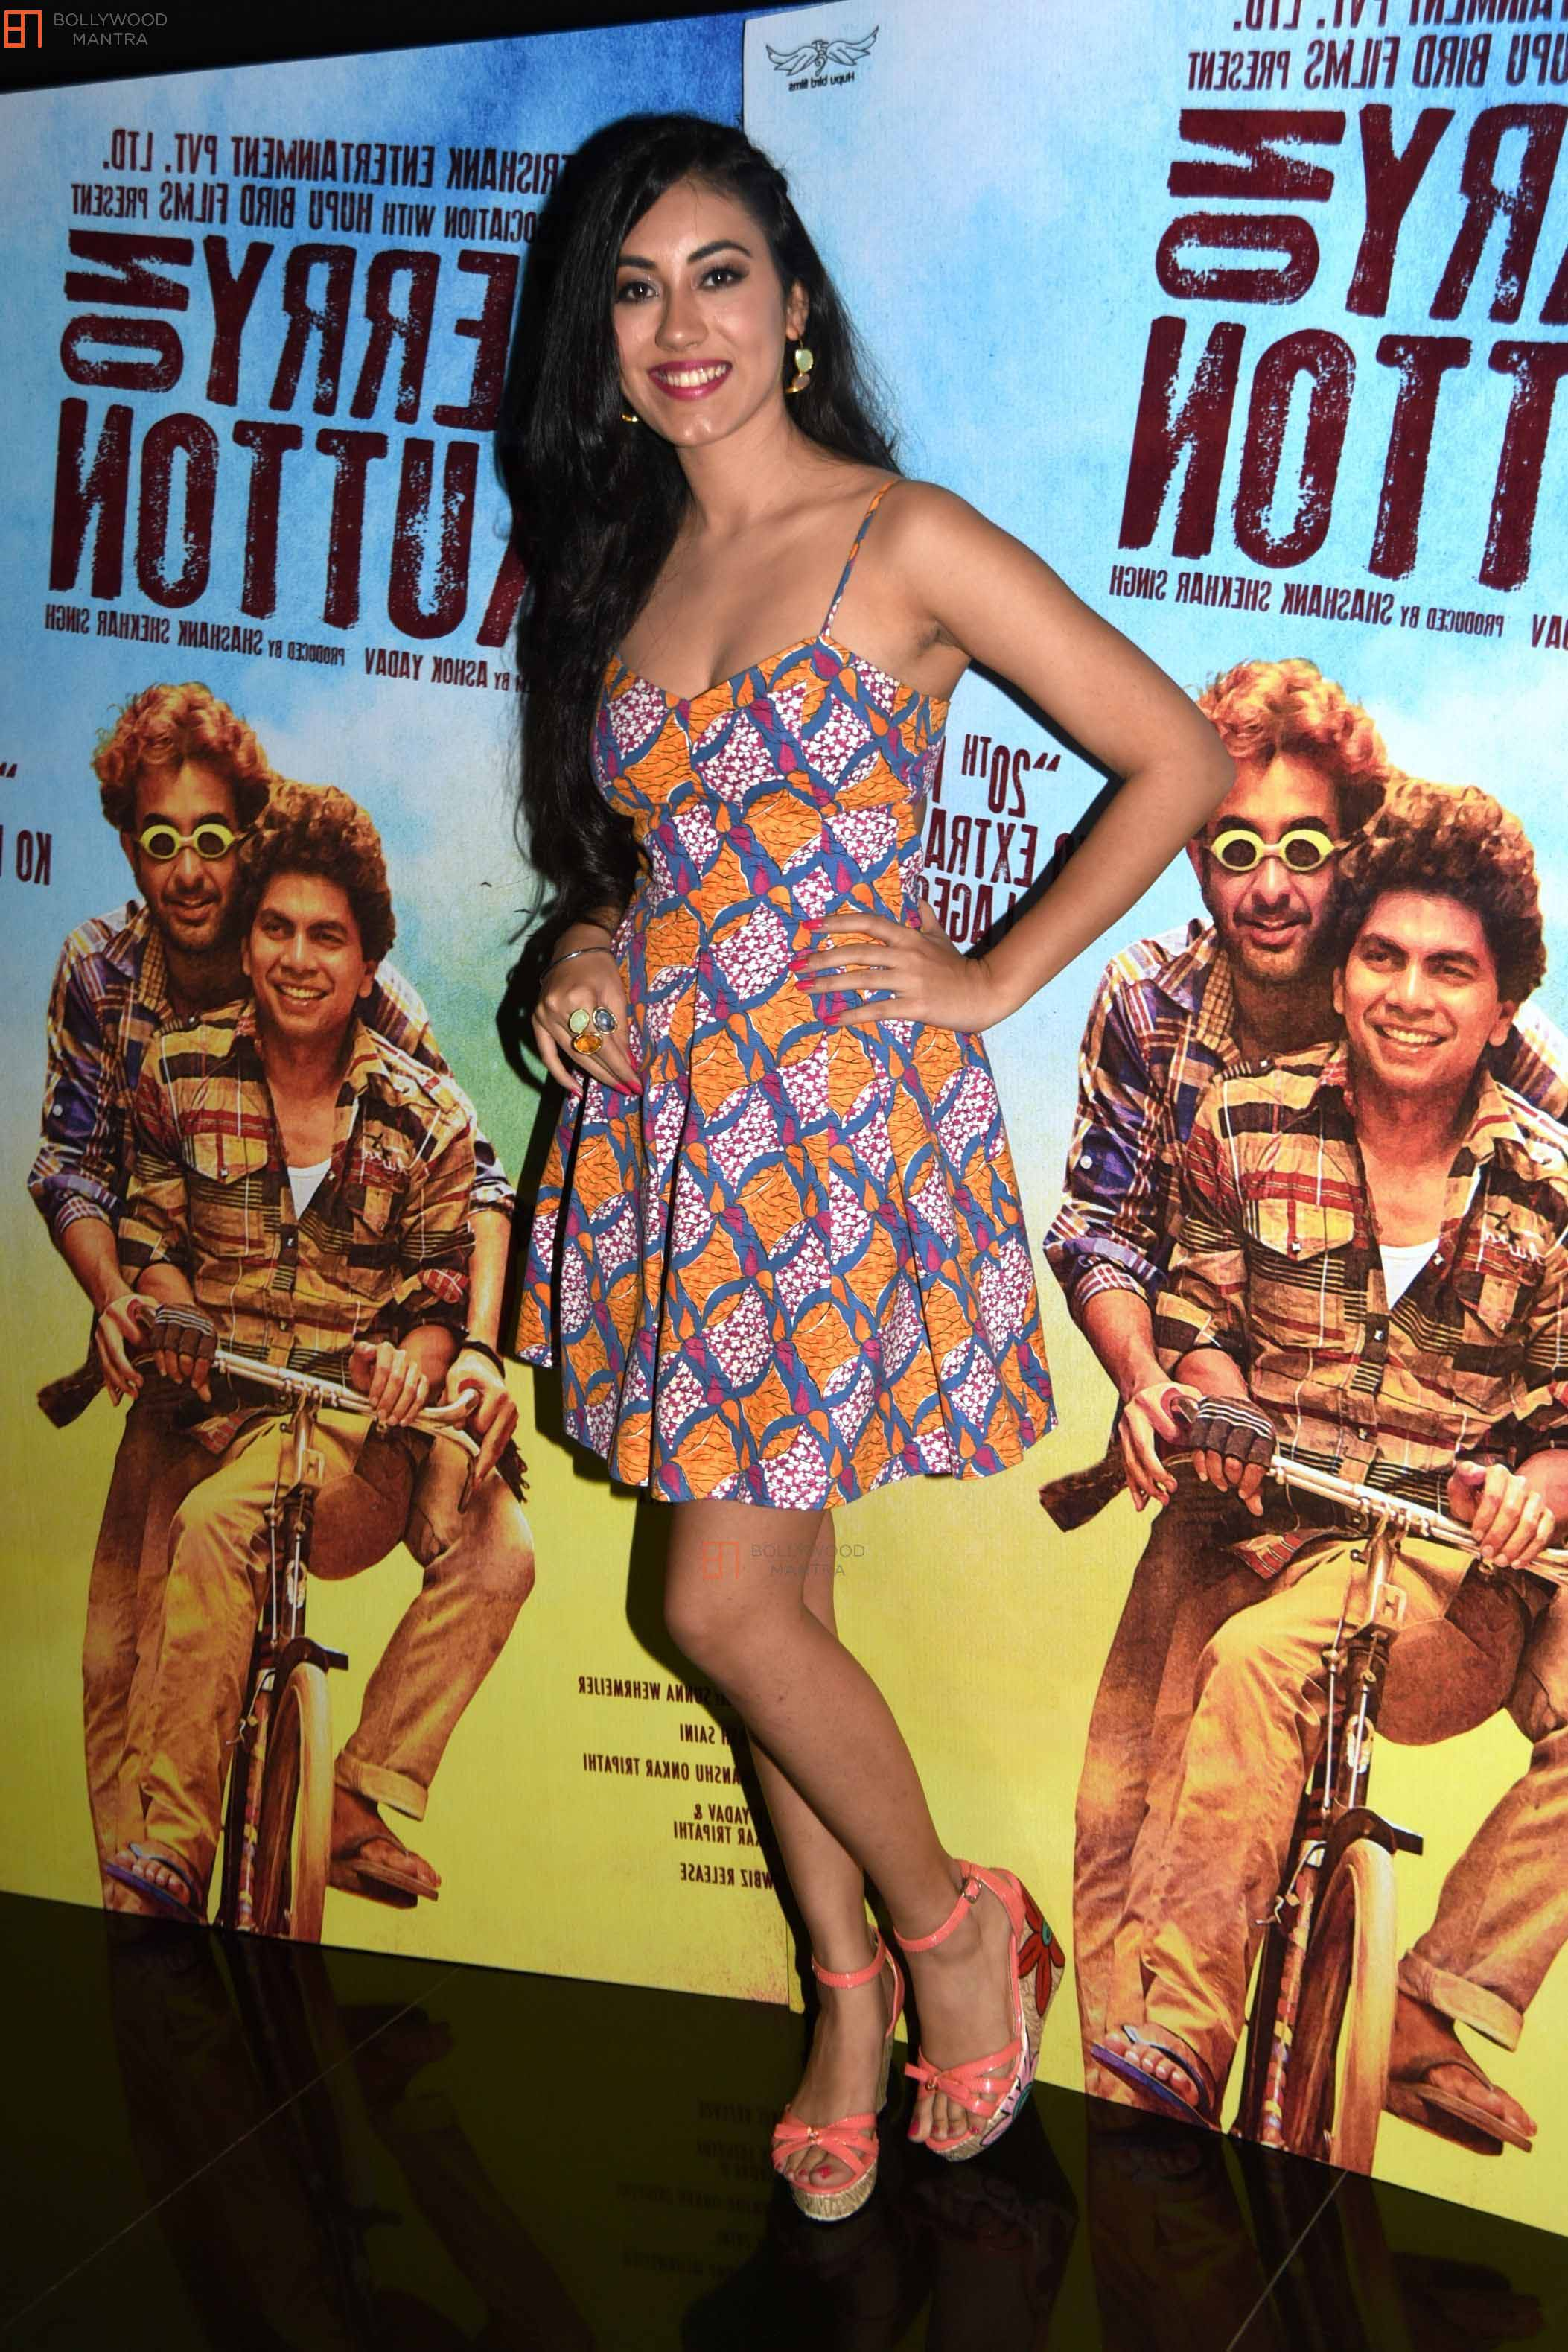 Kerry on kutton bollywood movie pictures